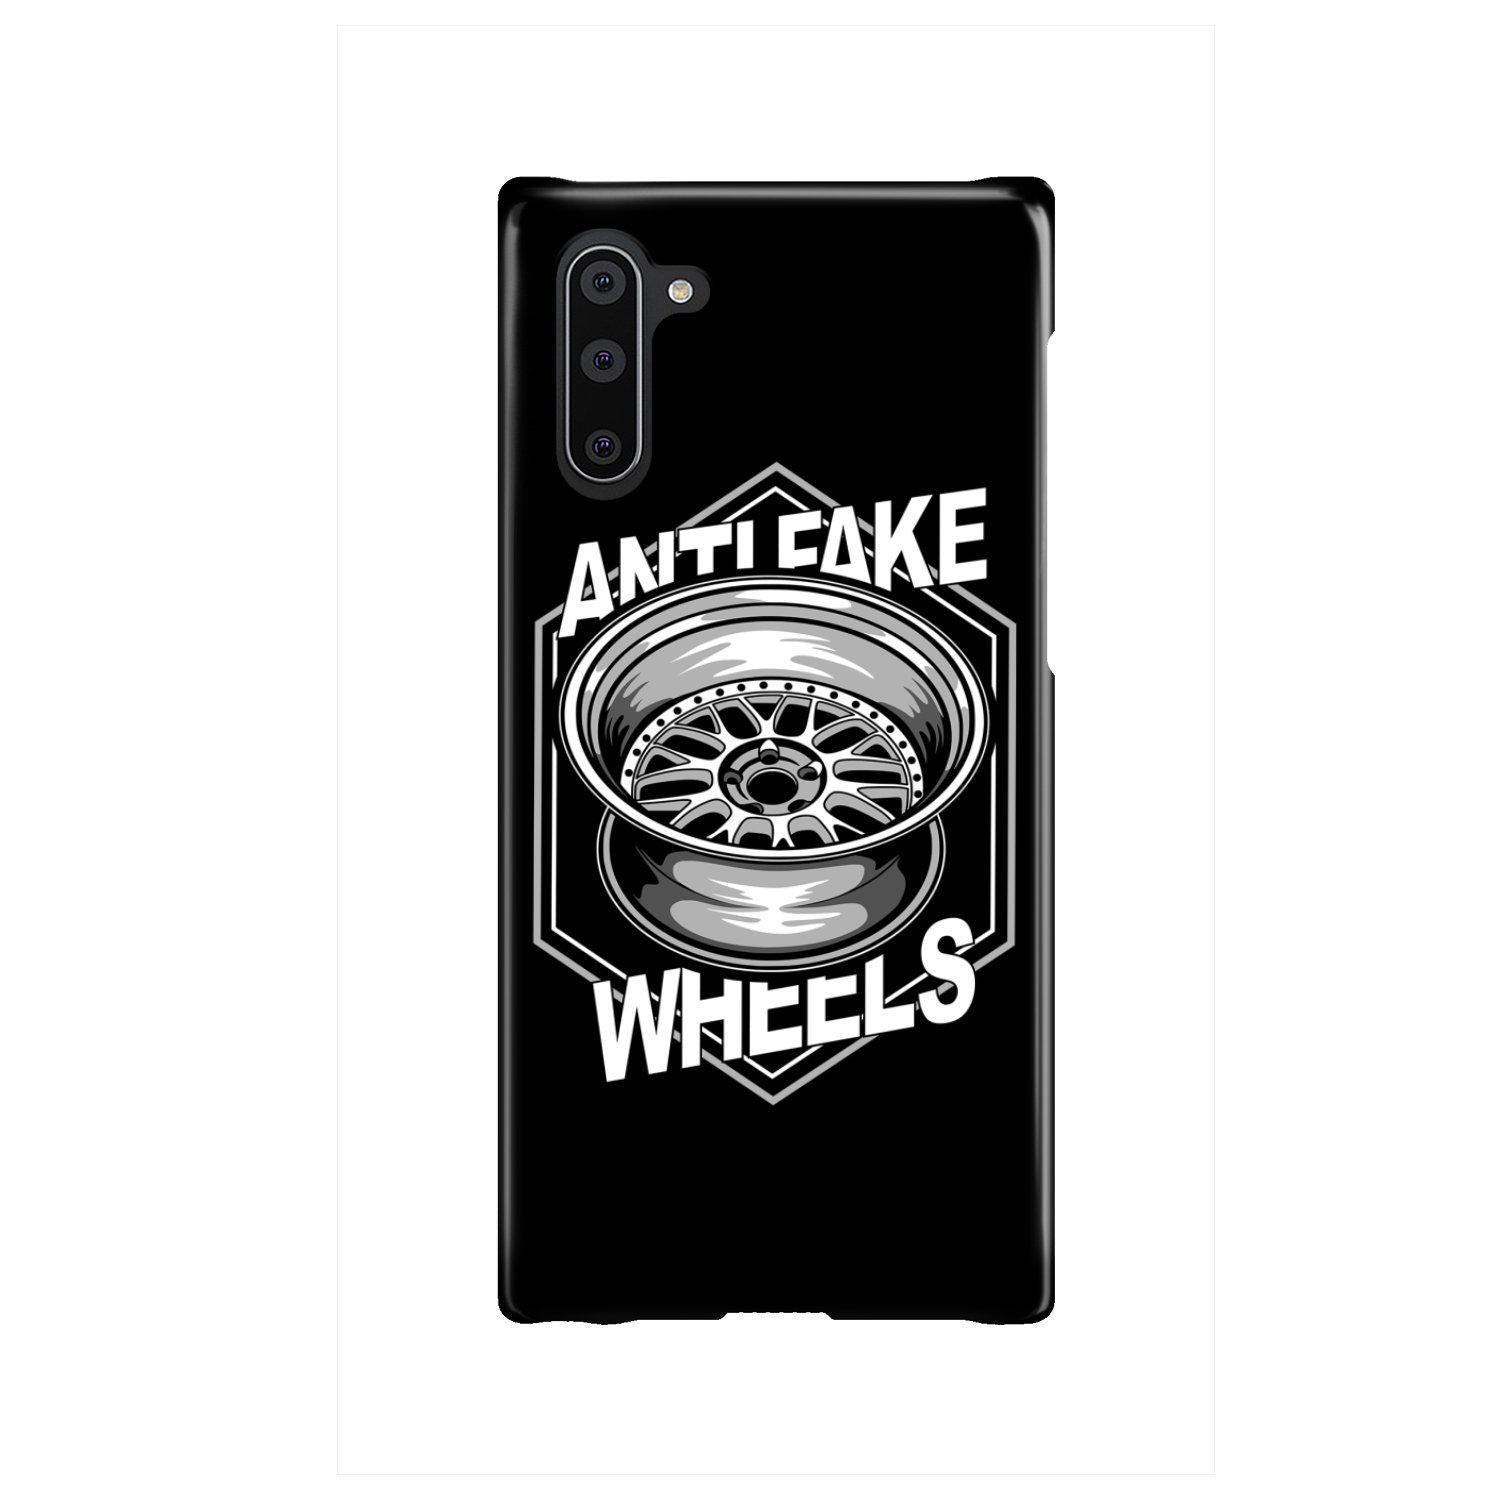 Anti Fake Wheels - VSXX - Snap Case - for Apple iPhone Models - TunerLifestyle